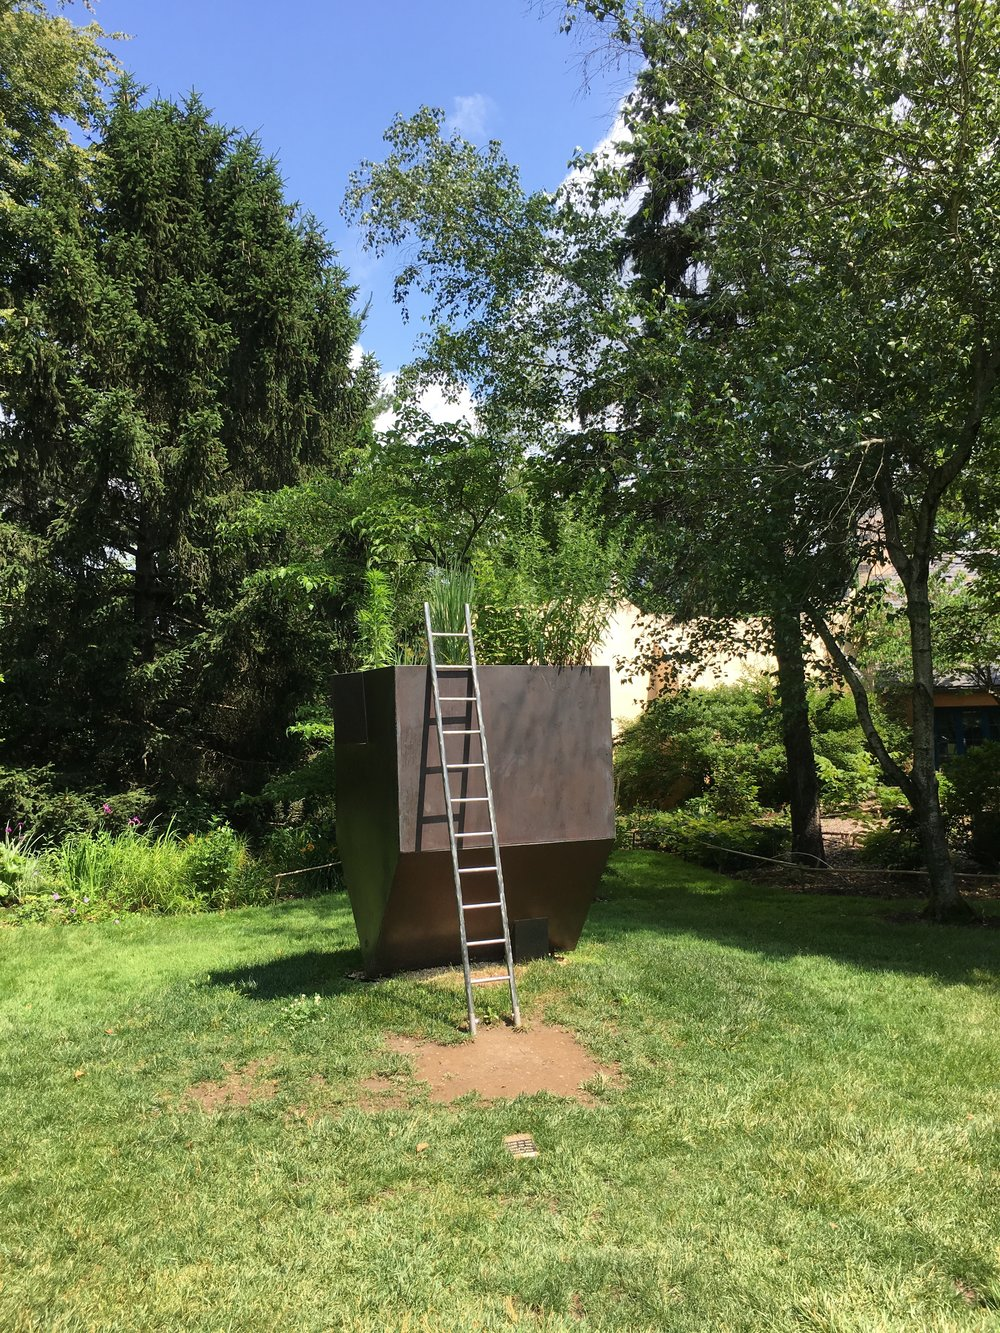 A Summer Sunday at Grounds for Sculpture